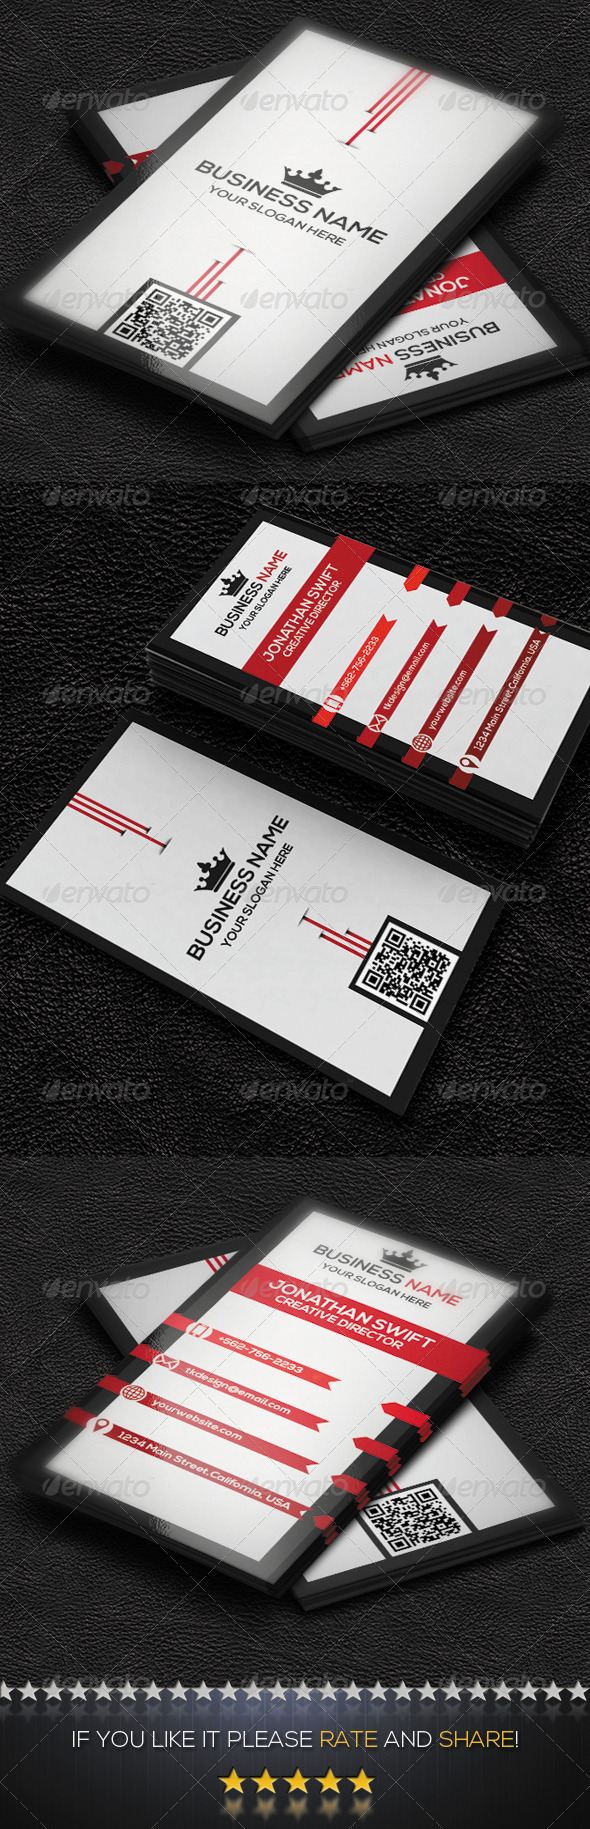 GraphicRiver Vertical Business Card No.02 8492160